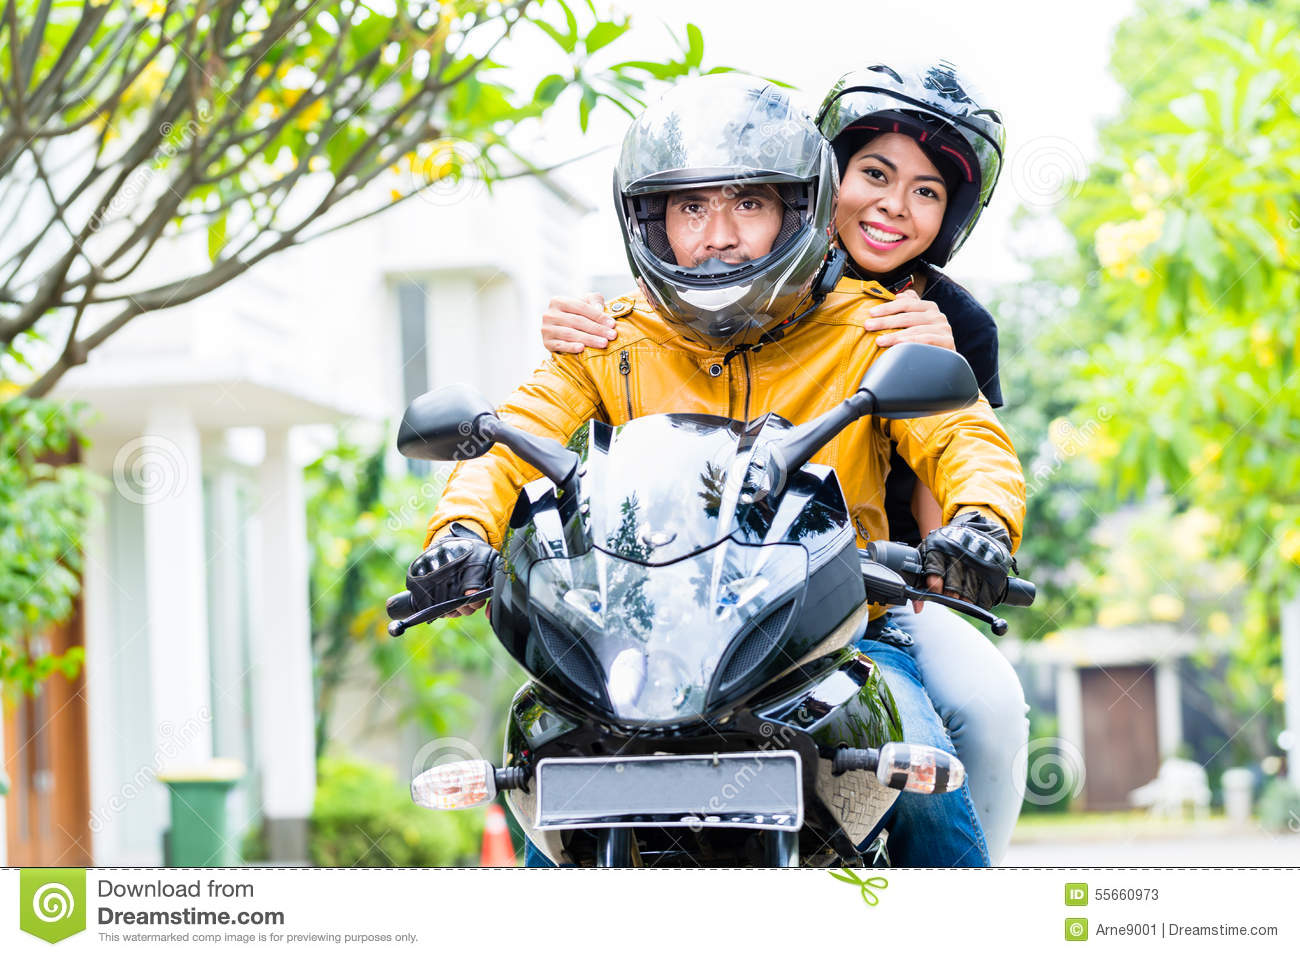 7 973 Couple Motorcycle Photos Free Royalty Free Stock Photos From Dreamstime